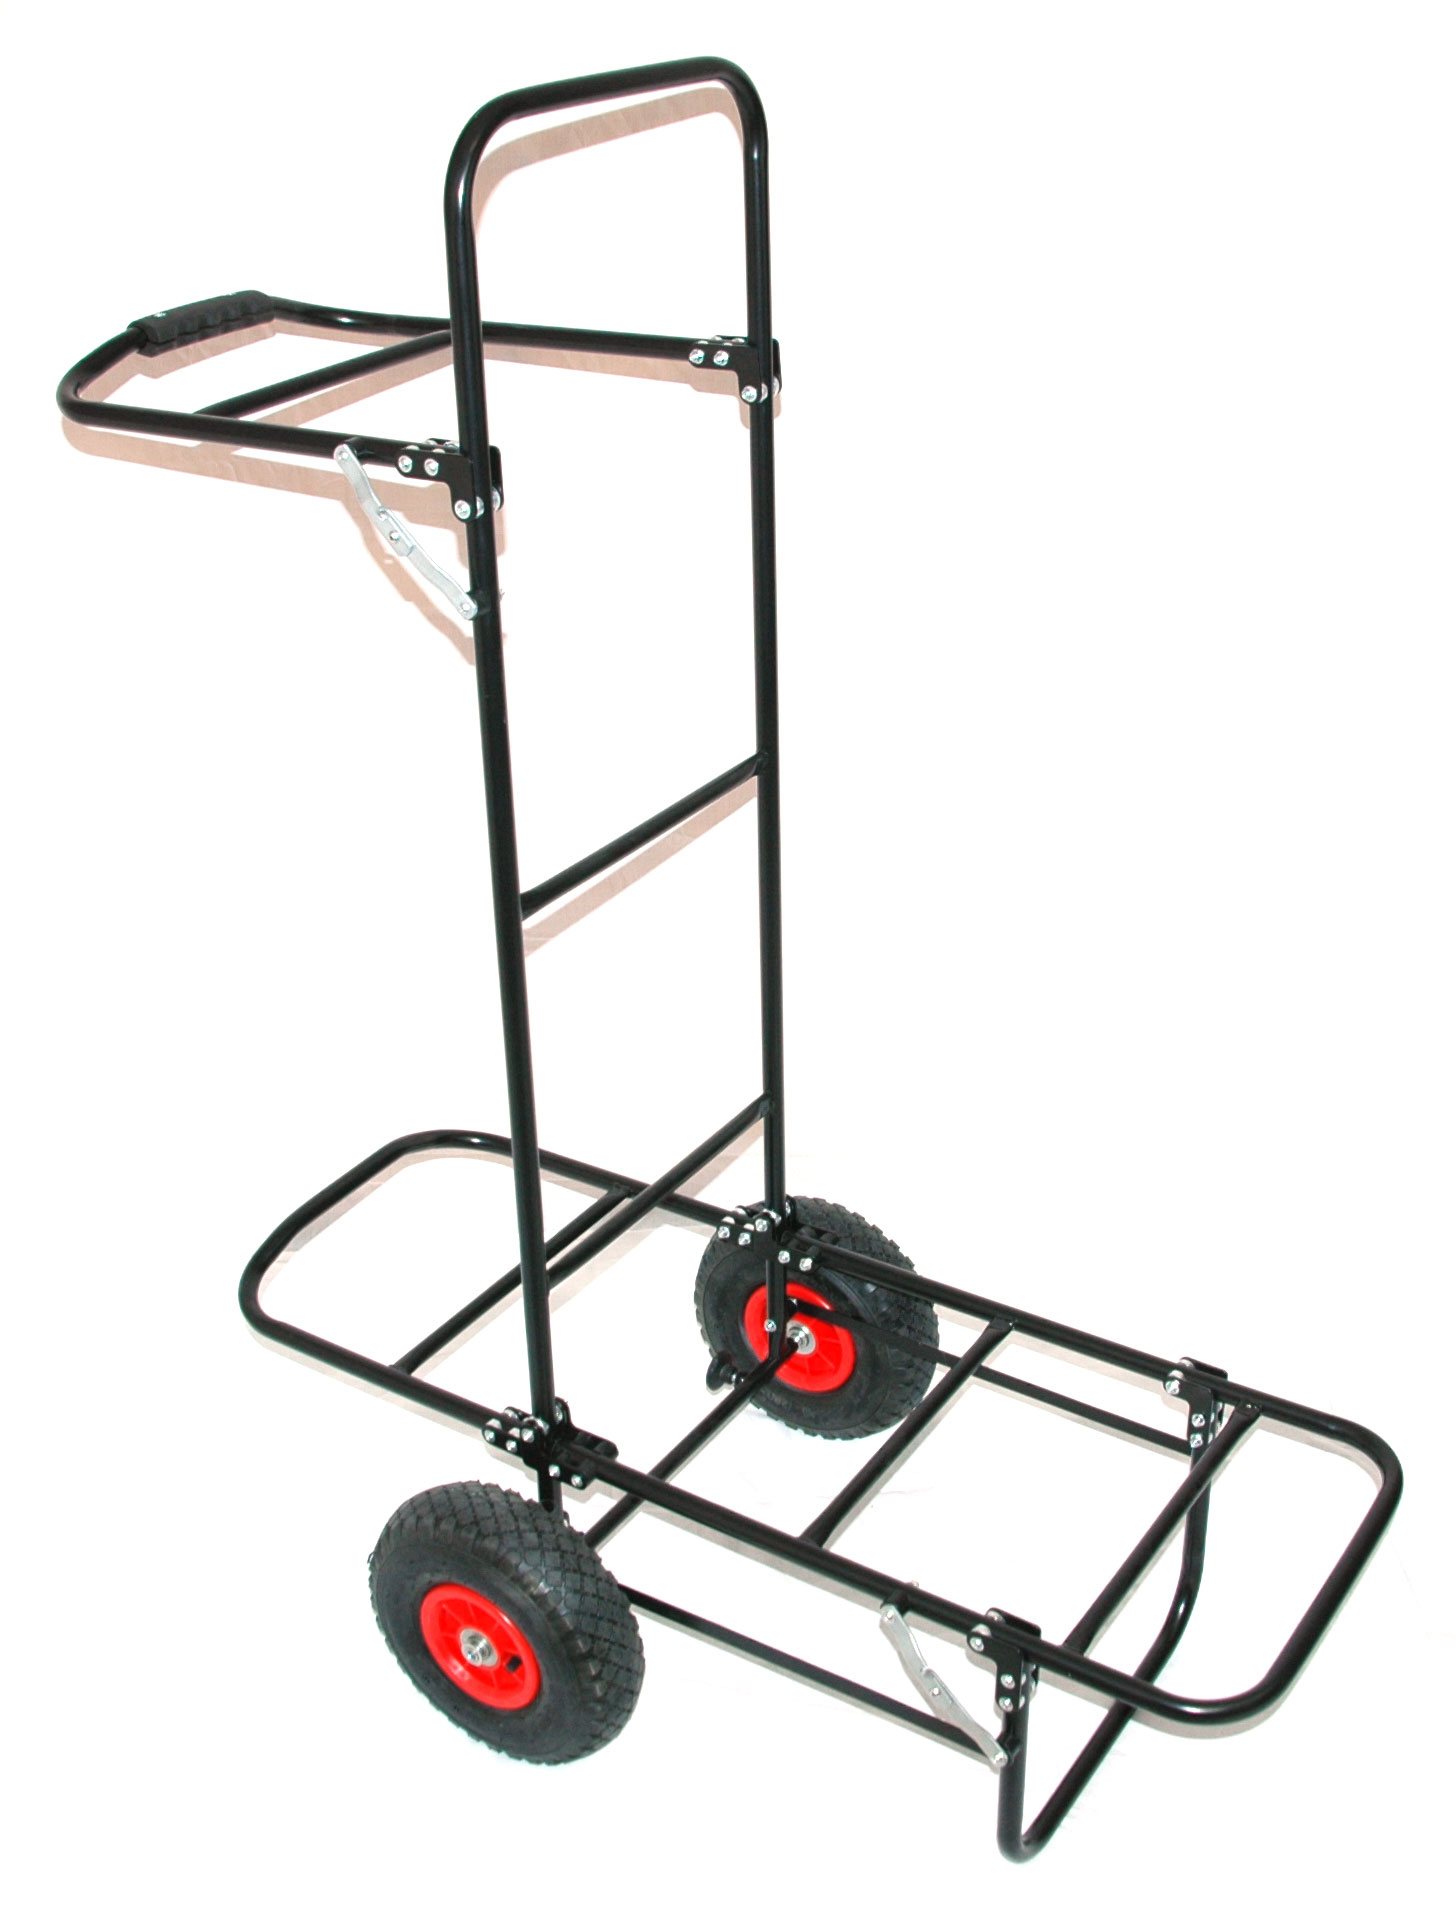 universal fishing chair attachments ladder back rush seat chairs bison pull trolley barrow porter rrp 79 99